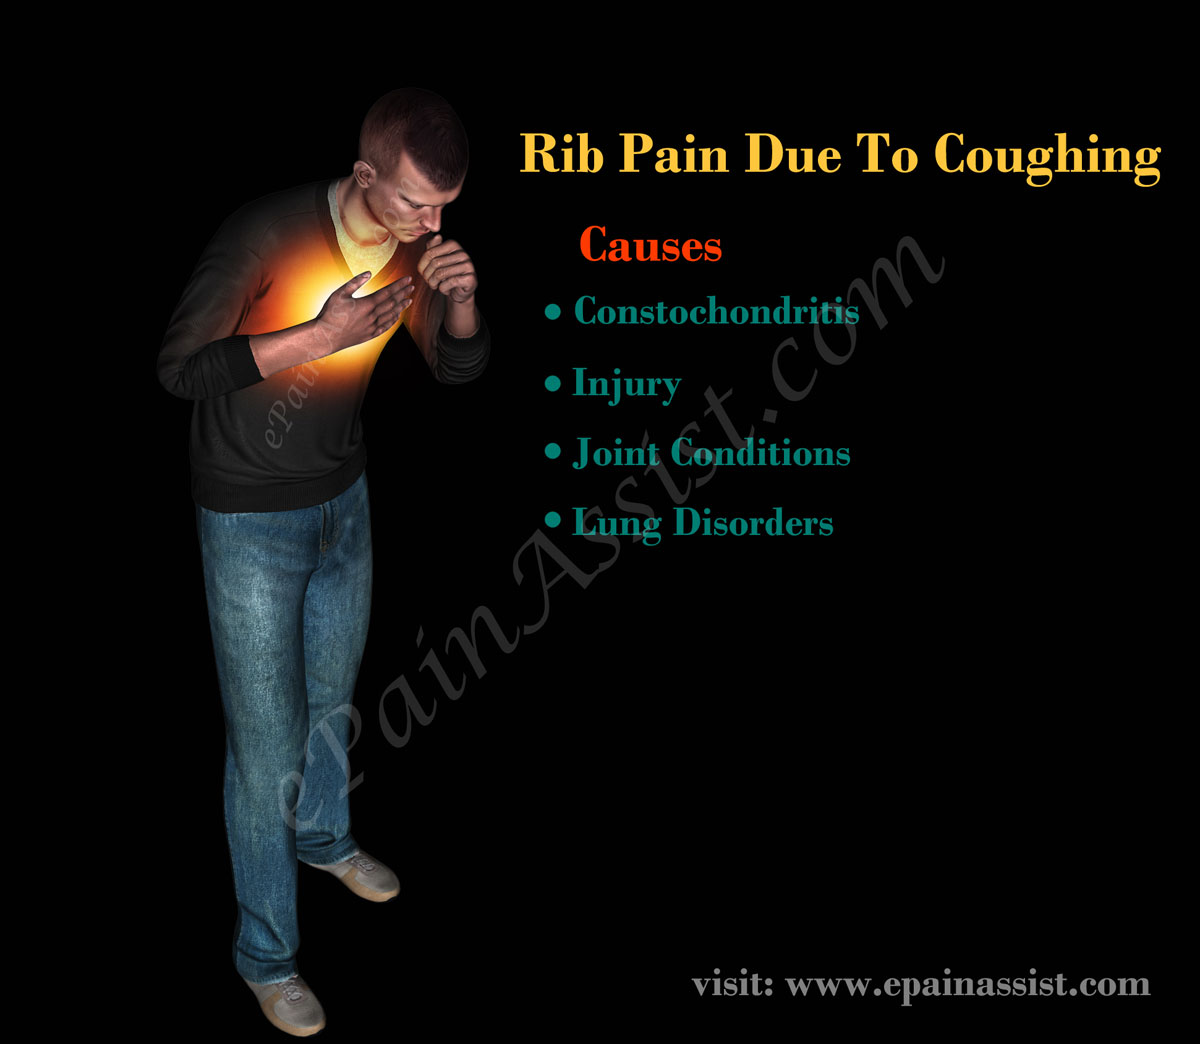 Rib Pain Due To Coughing